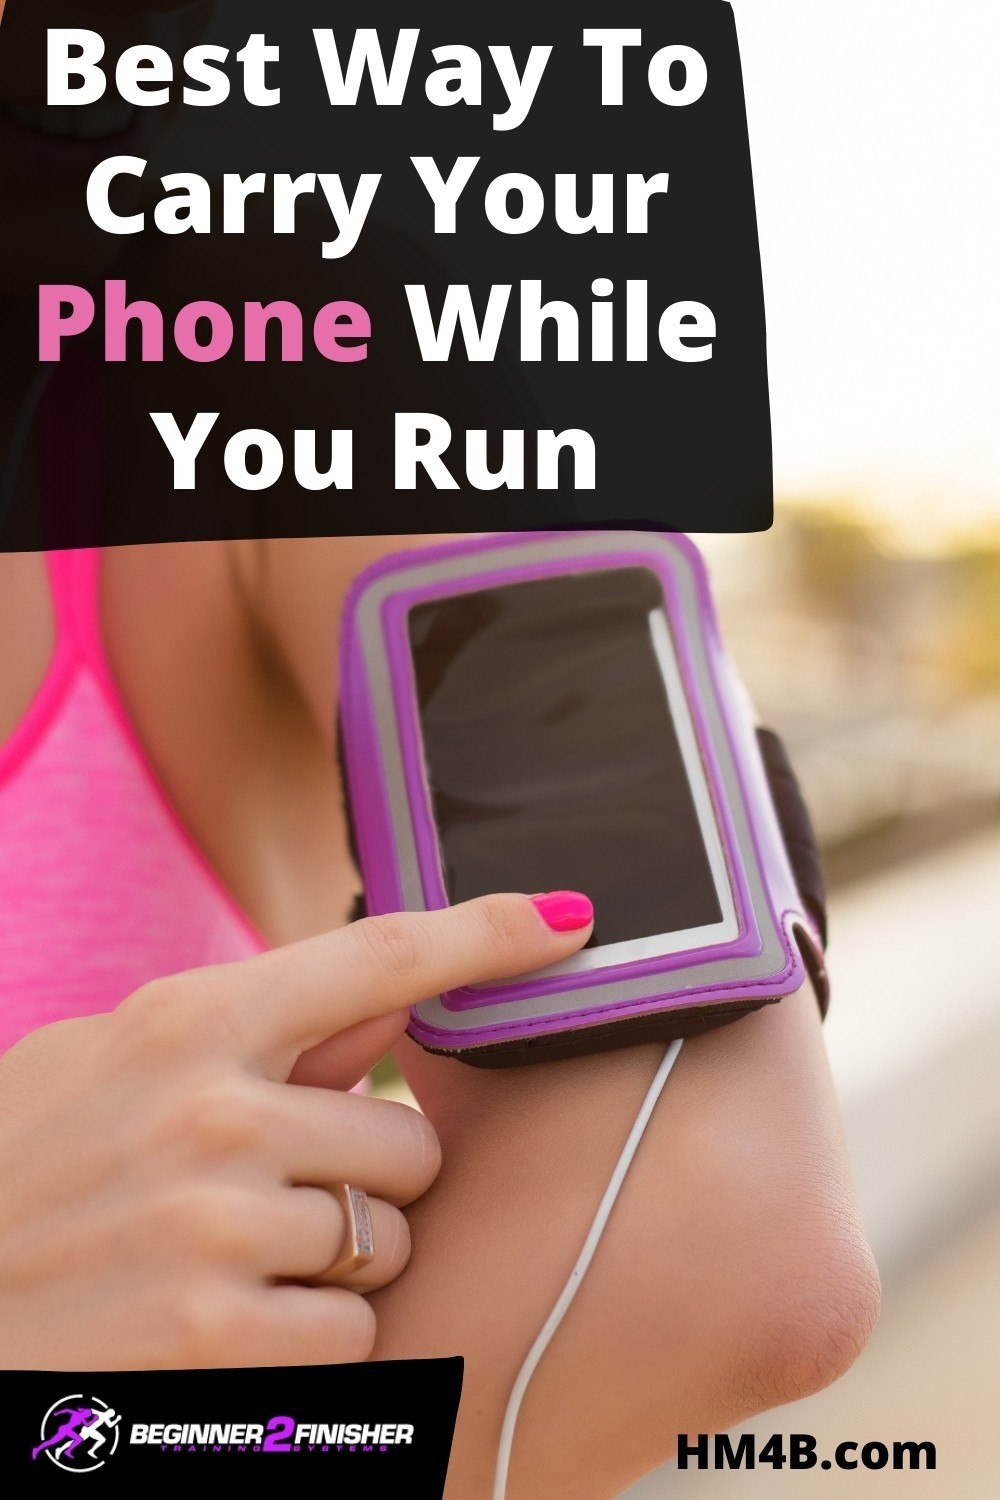 7 Best Ways To Carry Your Phone While You Run